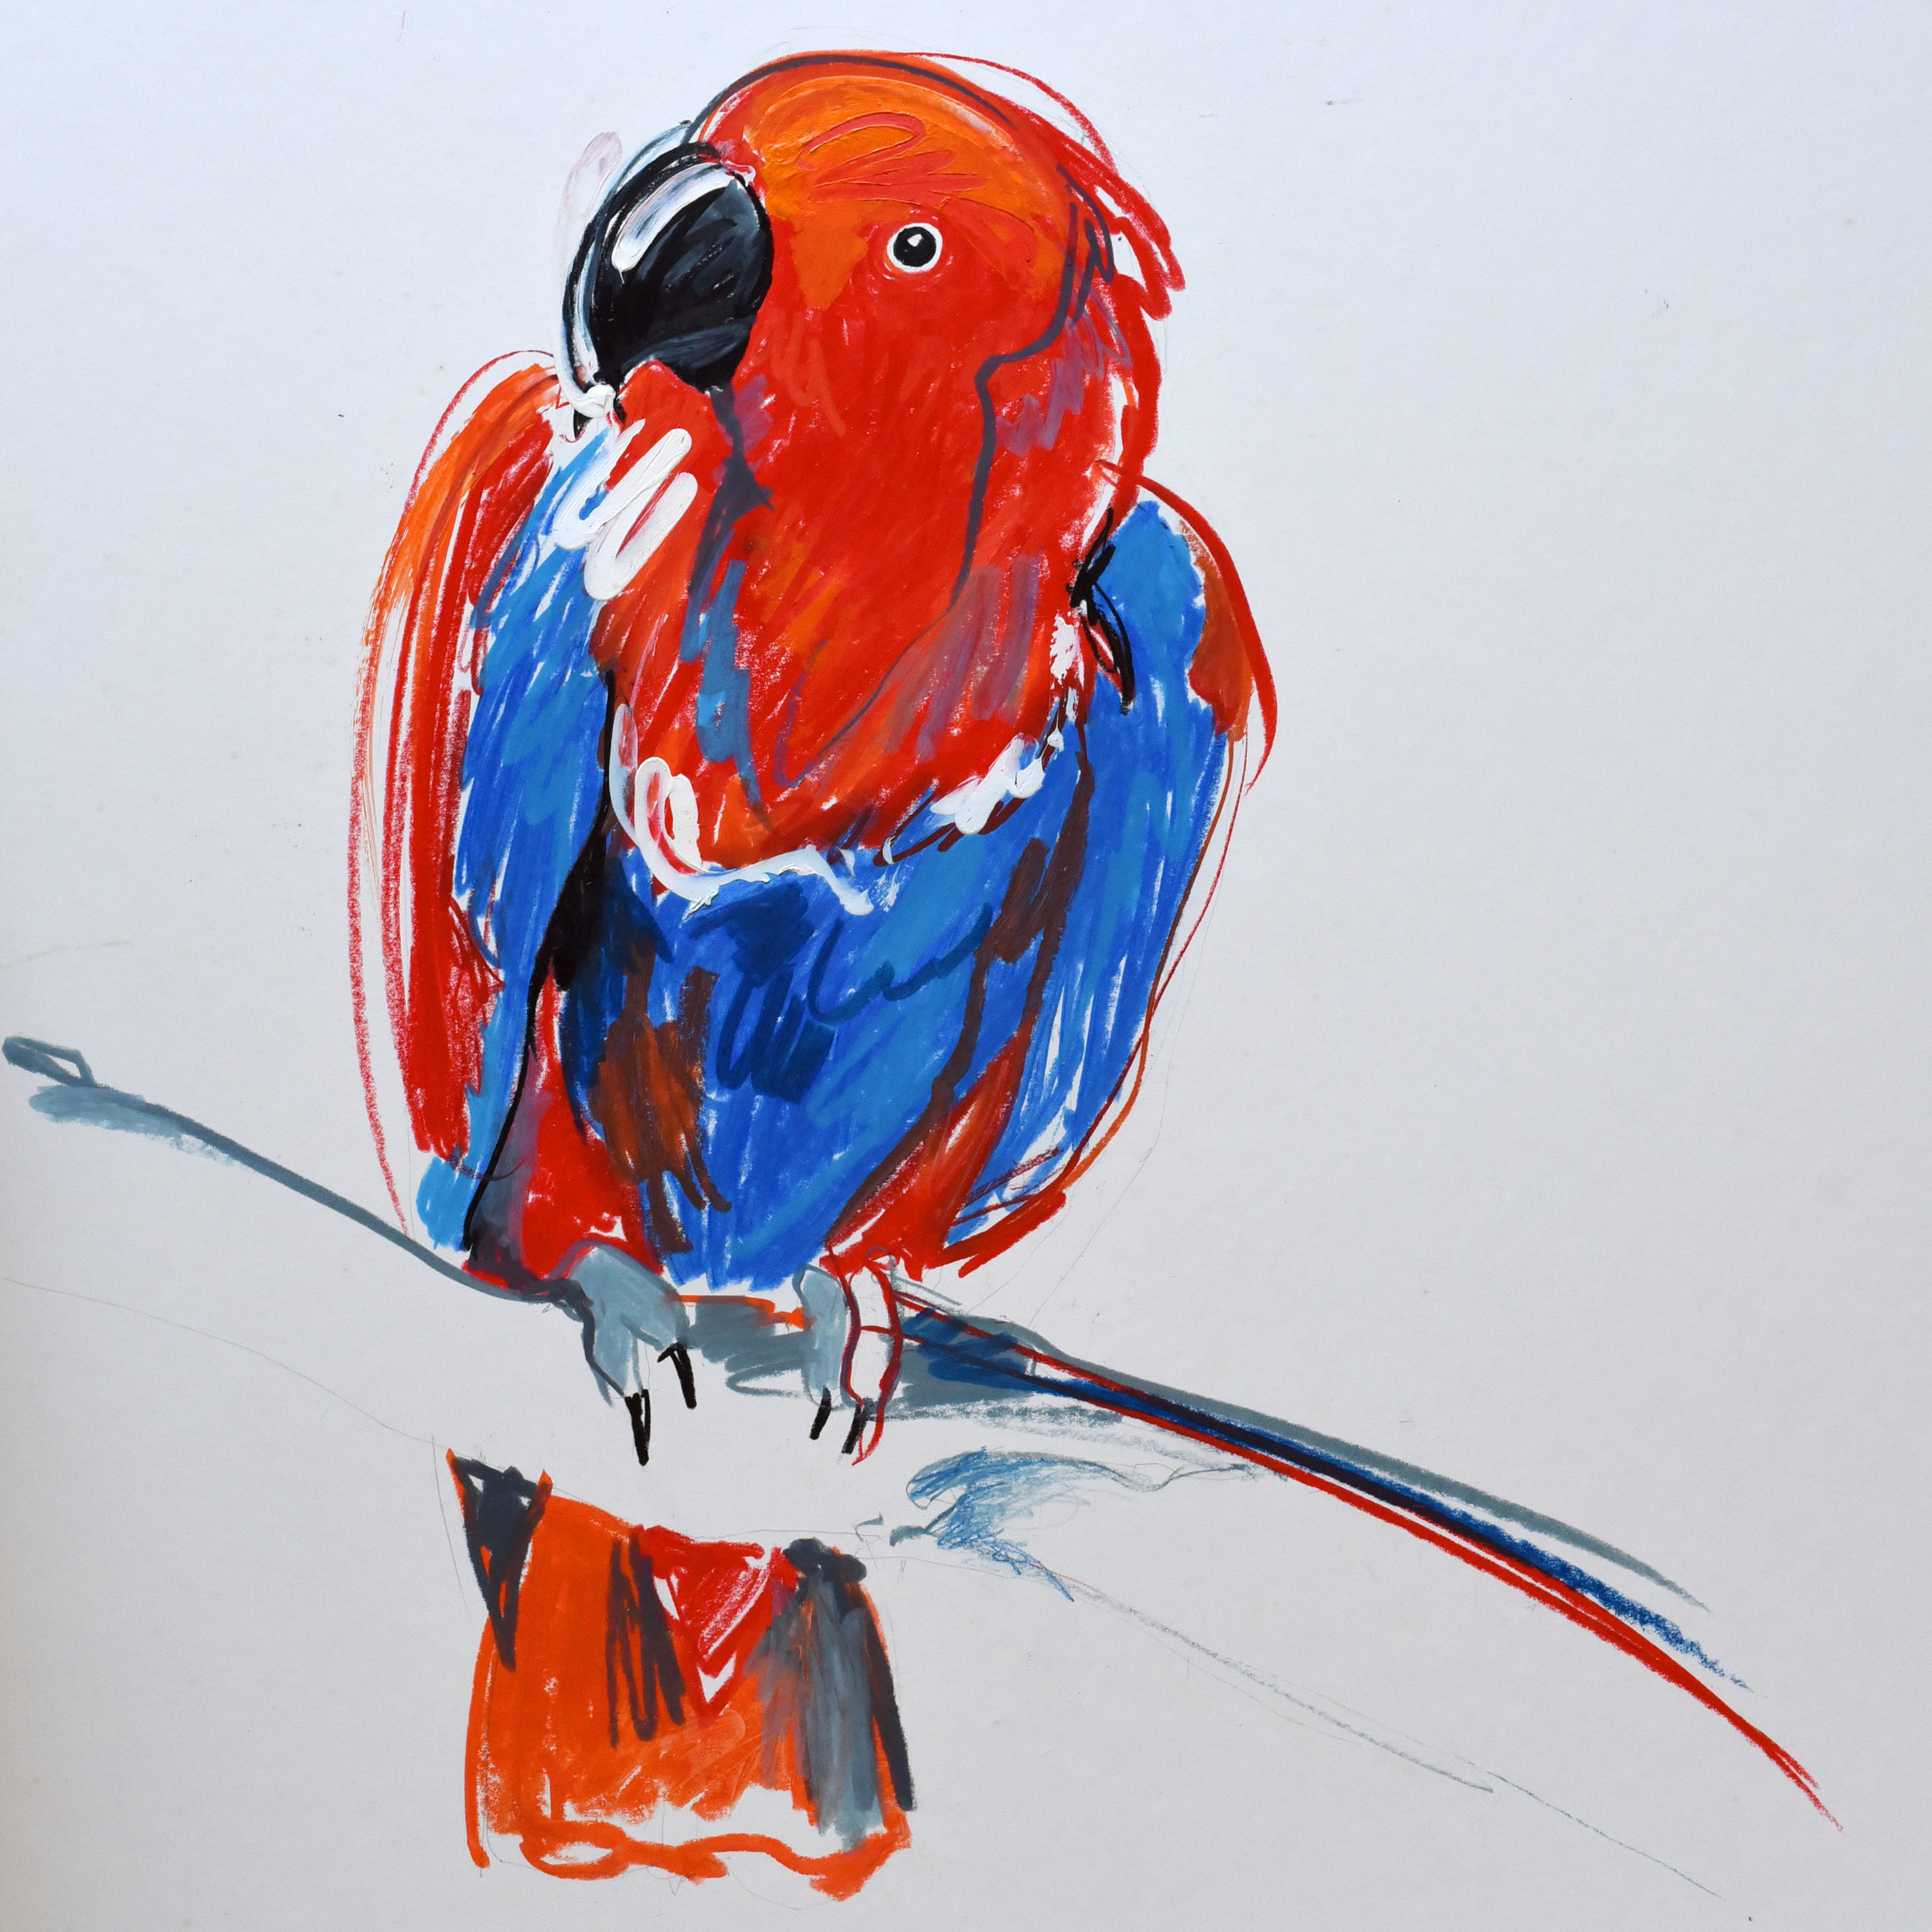 Crayon and pencil drawing of a red and blue parrot